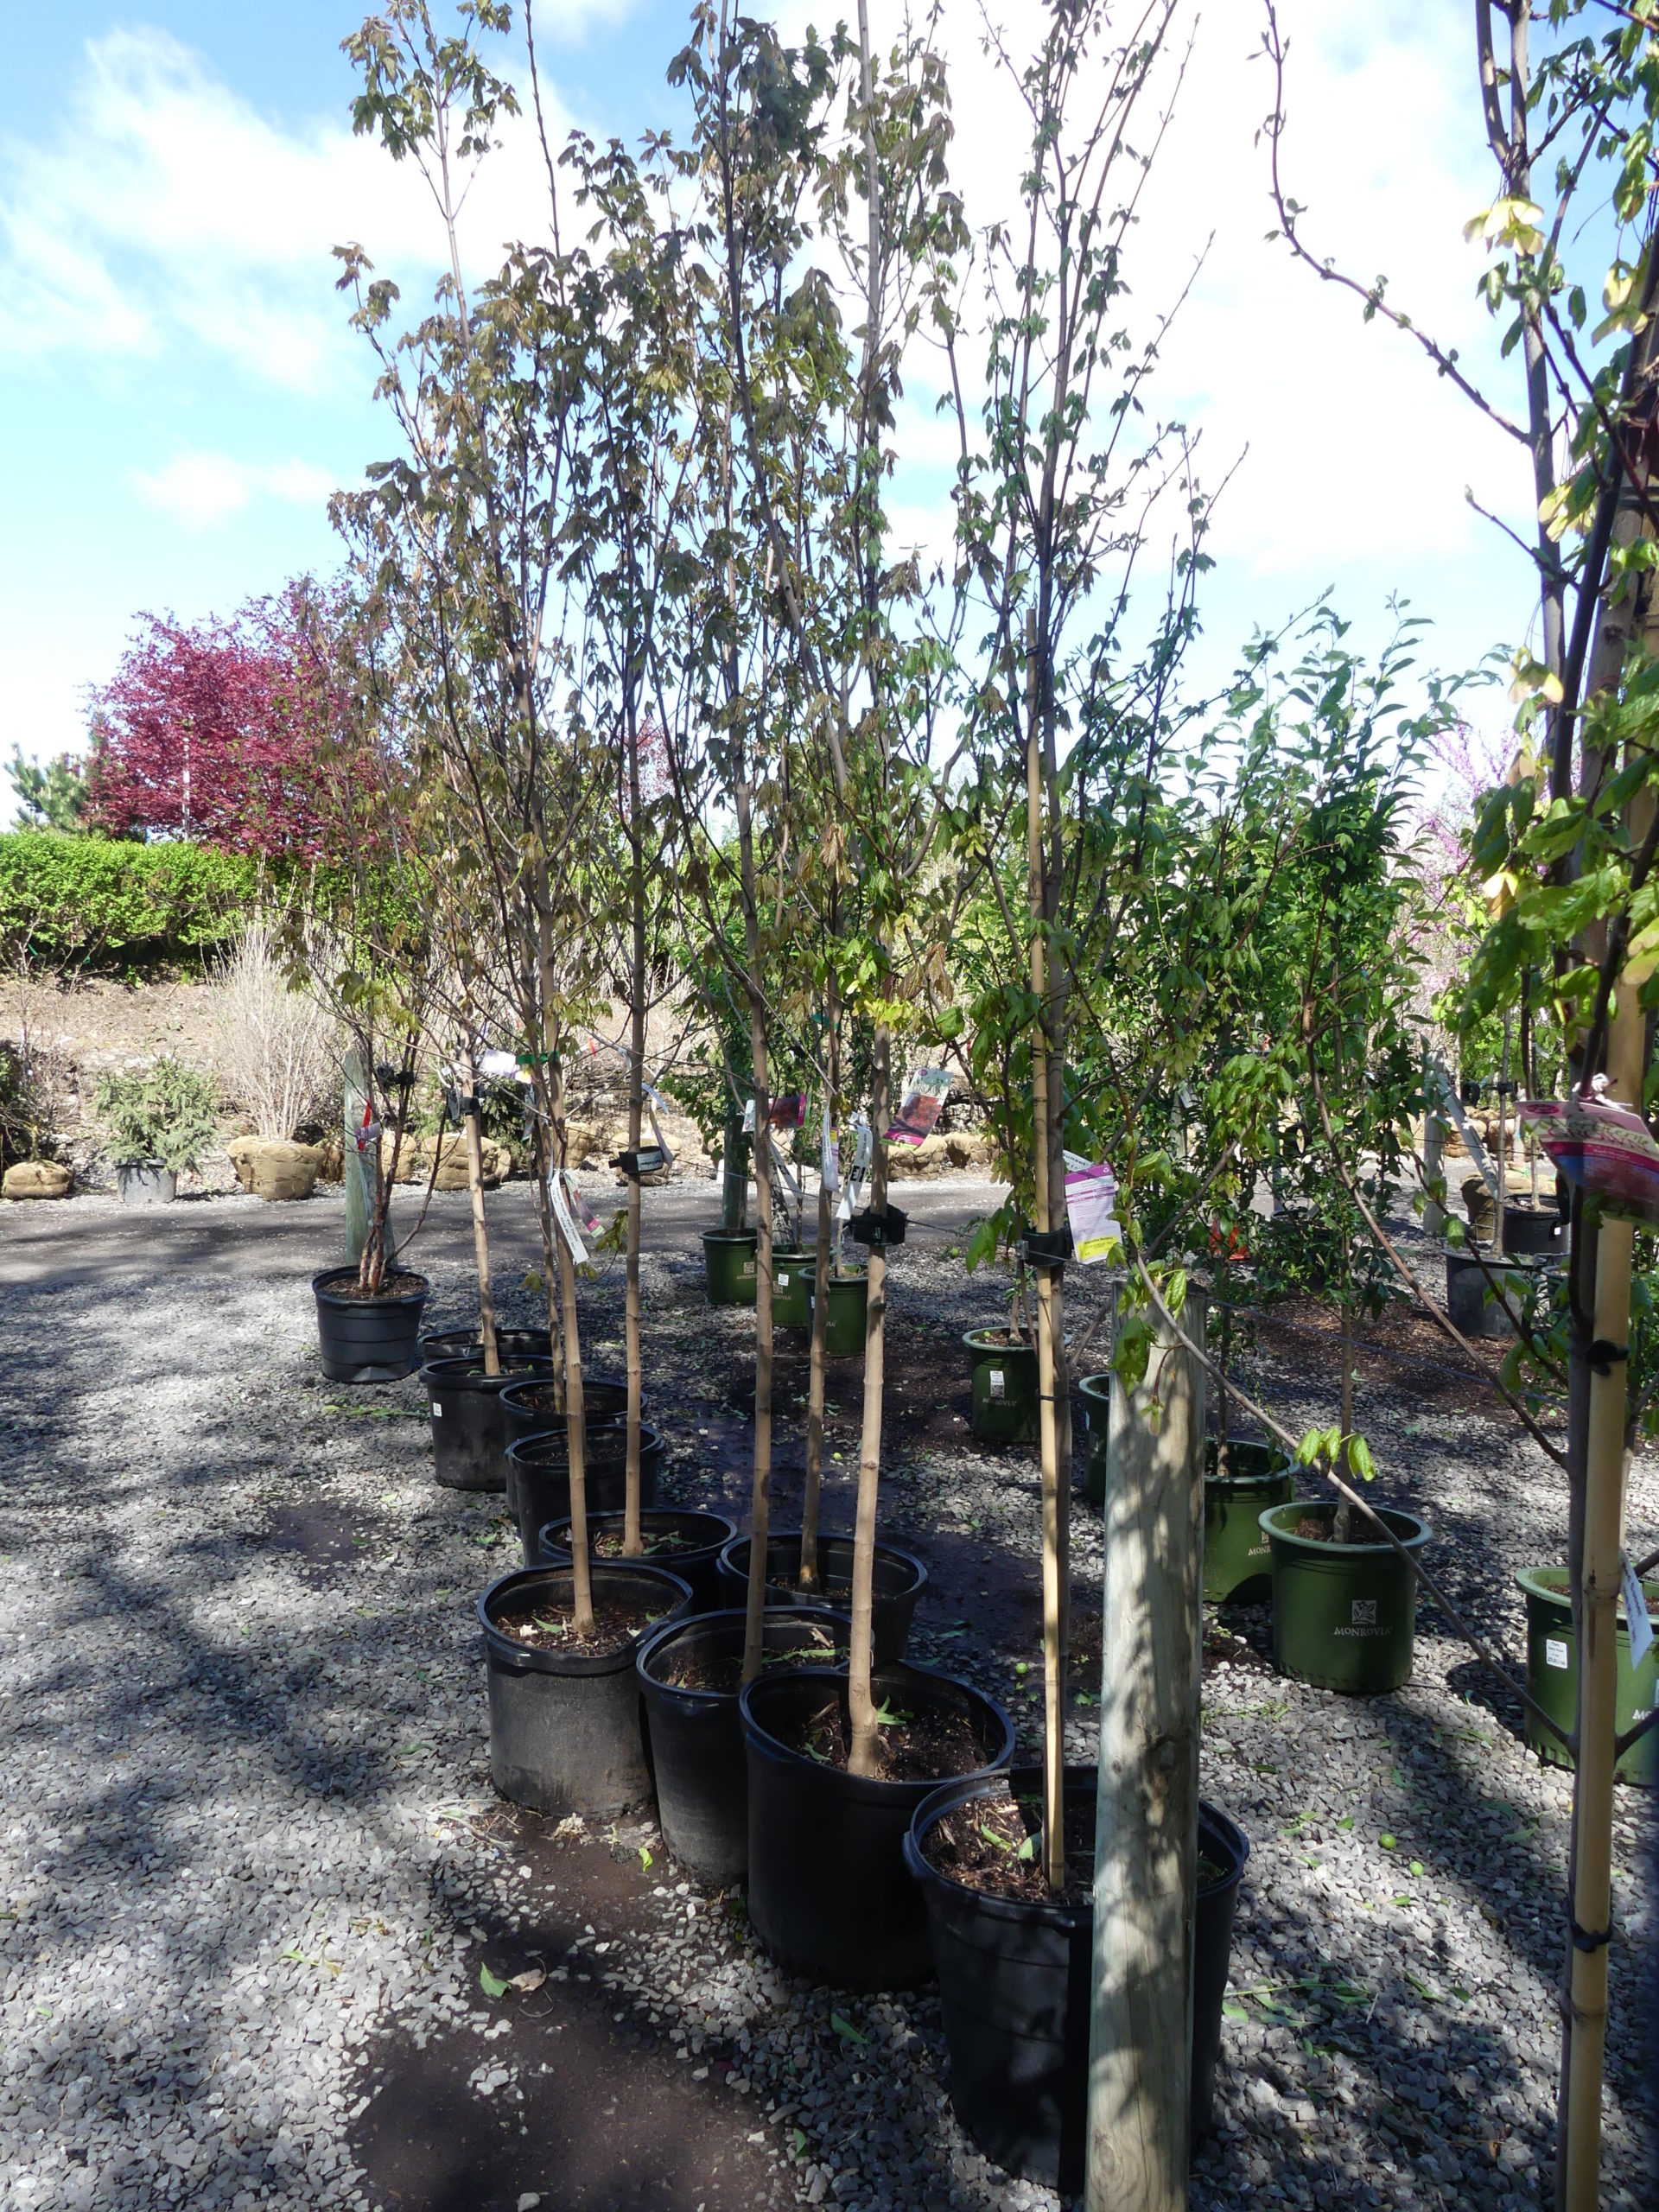 These container-grown maples are not expensive but their form and pruning leaves much to be desired. Container-grown trees and shrubs need special care when planting or the roots will continue to grow in circles, often resulting in years of decline before failure.